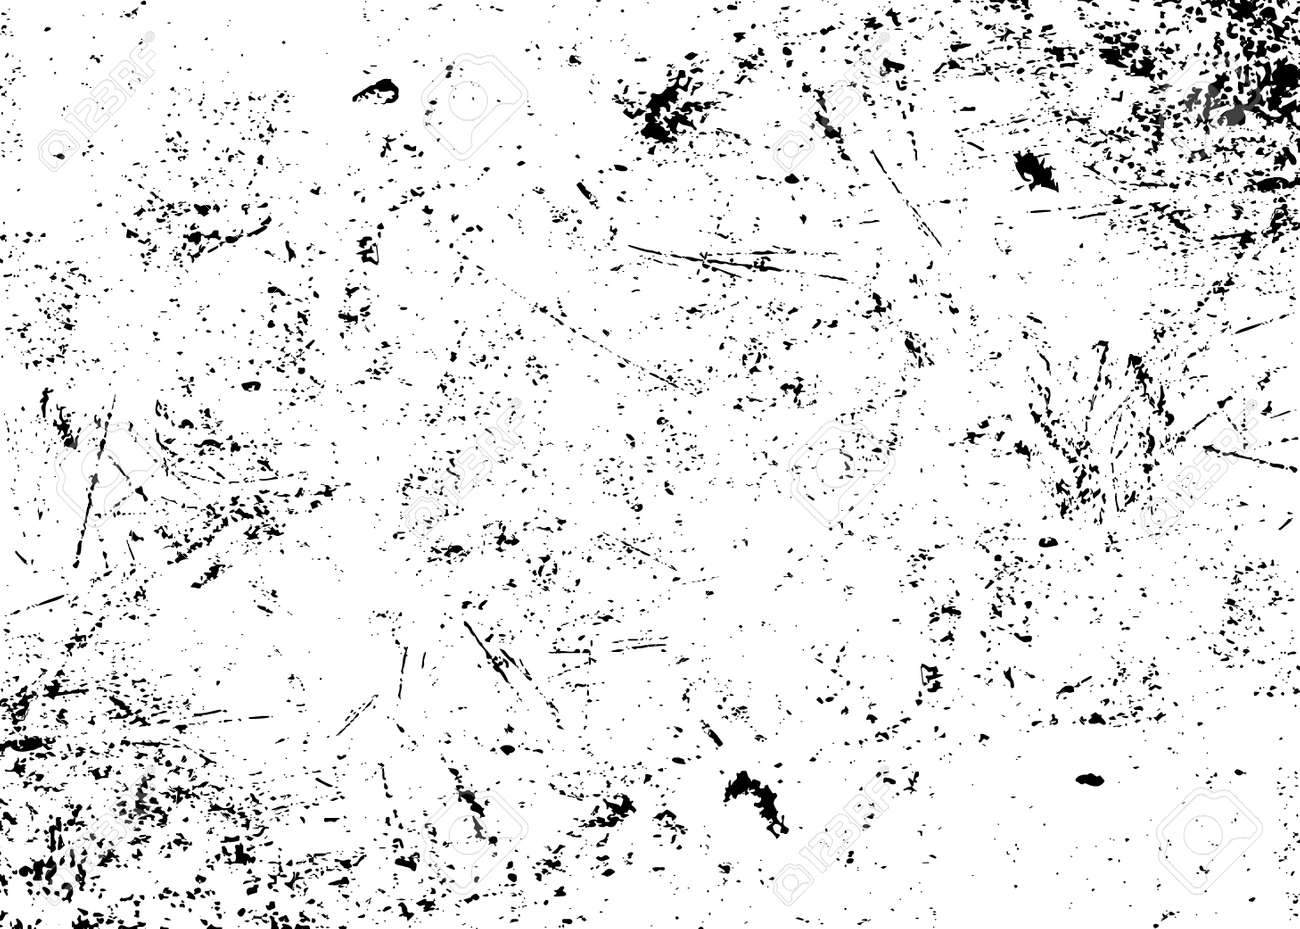 grunge texture white and black sketch abstract to create distressed rh 123rf com grunge texture vector photoshop grunge texture vector photoshop